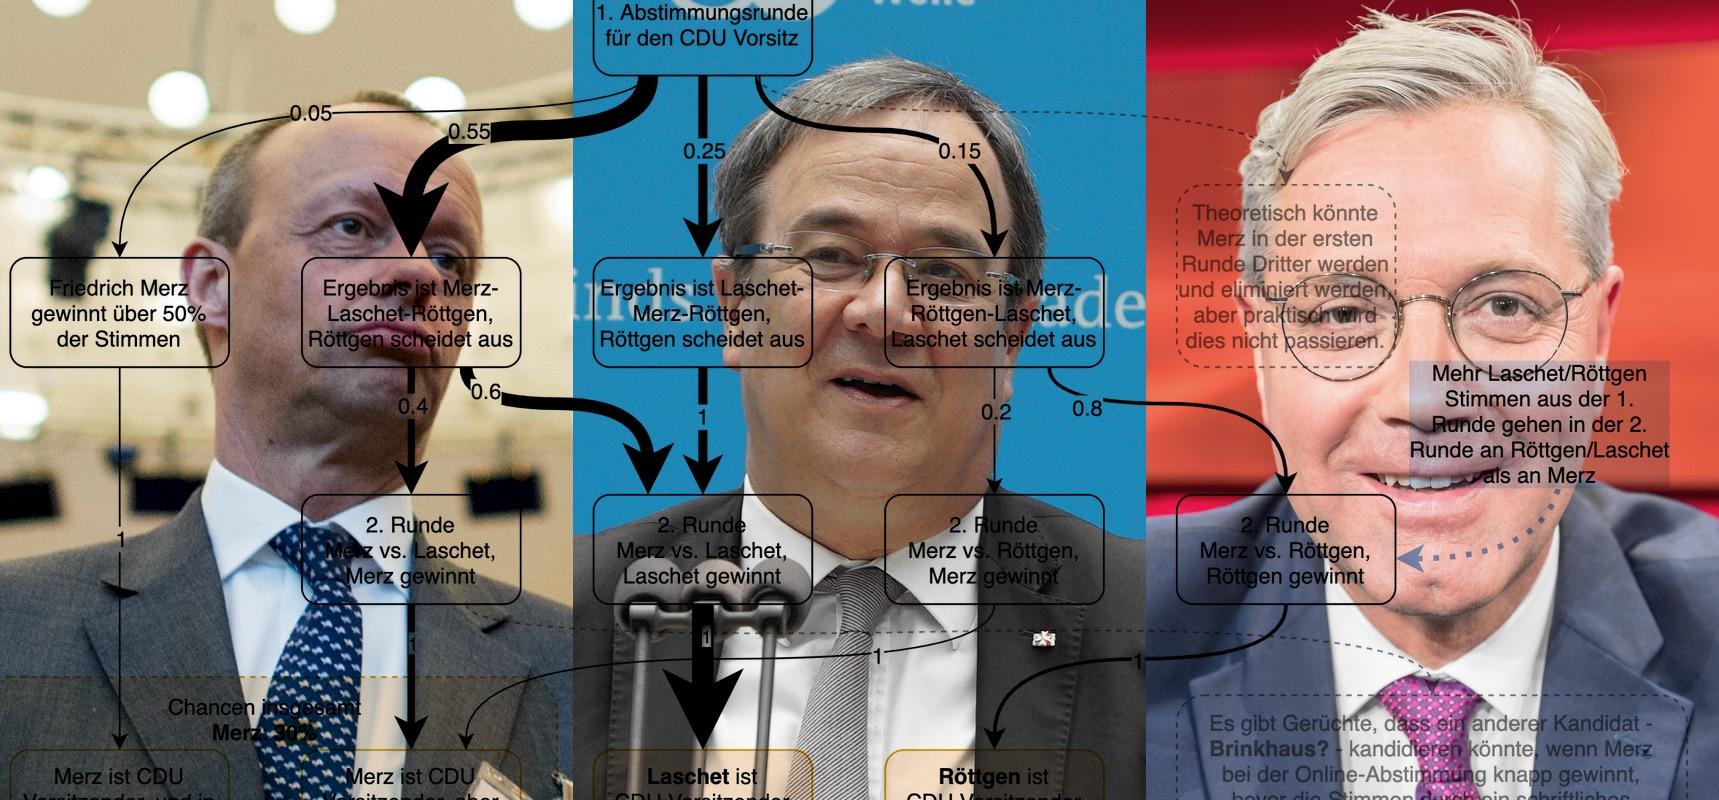 #CDUVorsitz 2021 – diagrams to work out who will likely be AKK's successor, and CDU-CSU Chancellor Candidate